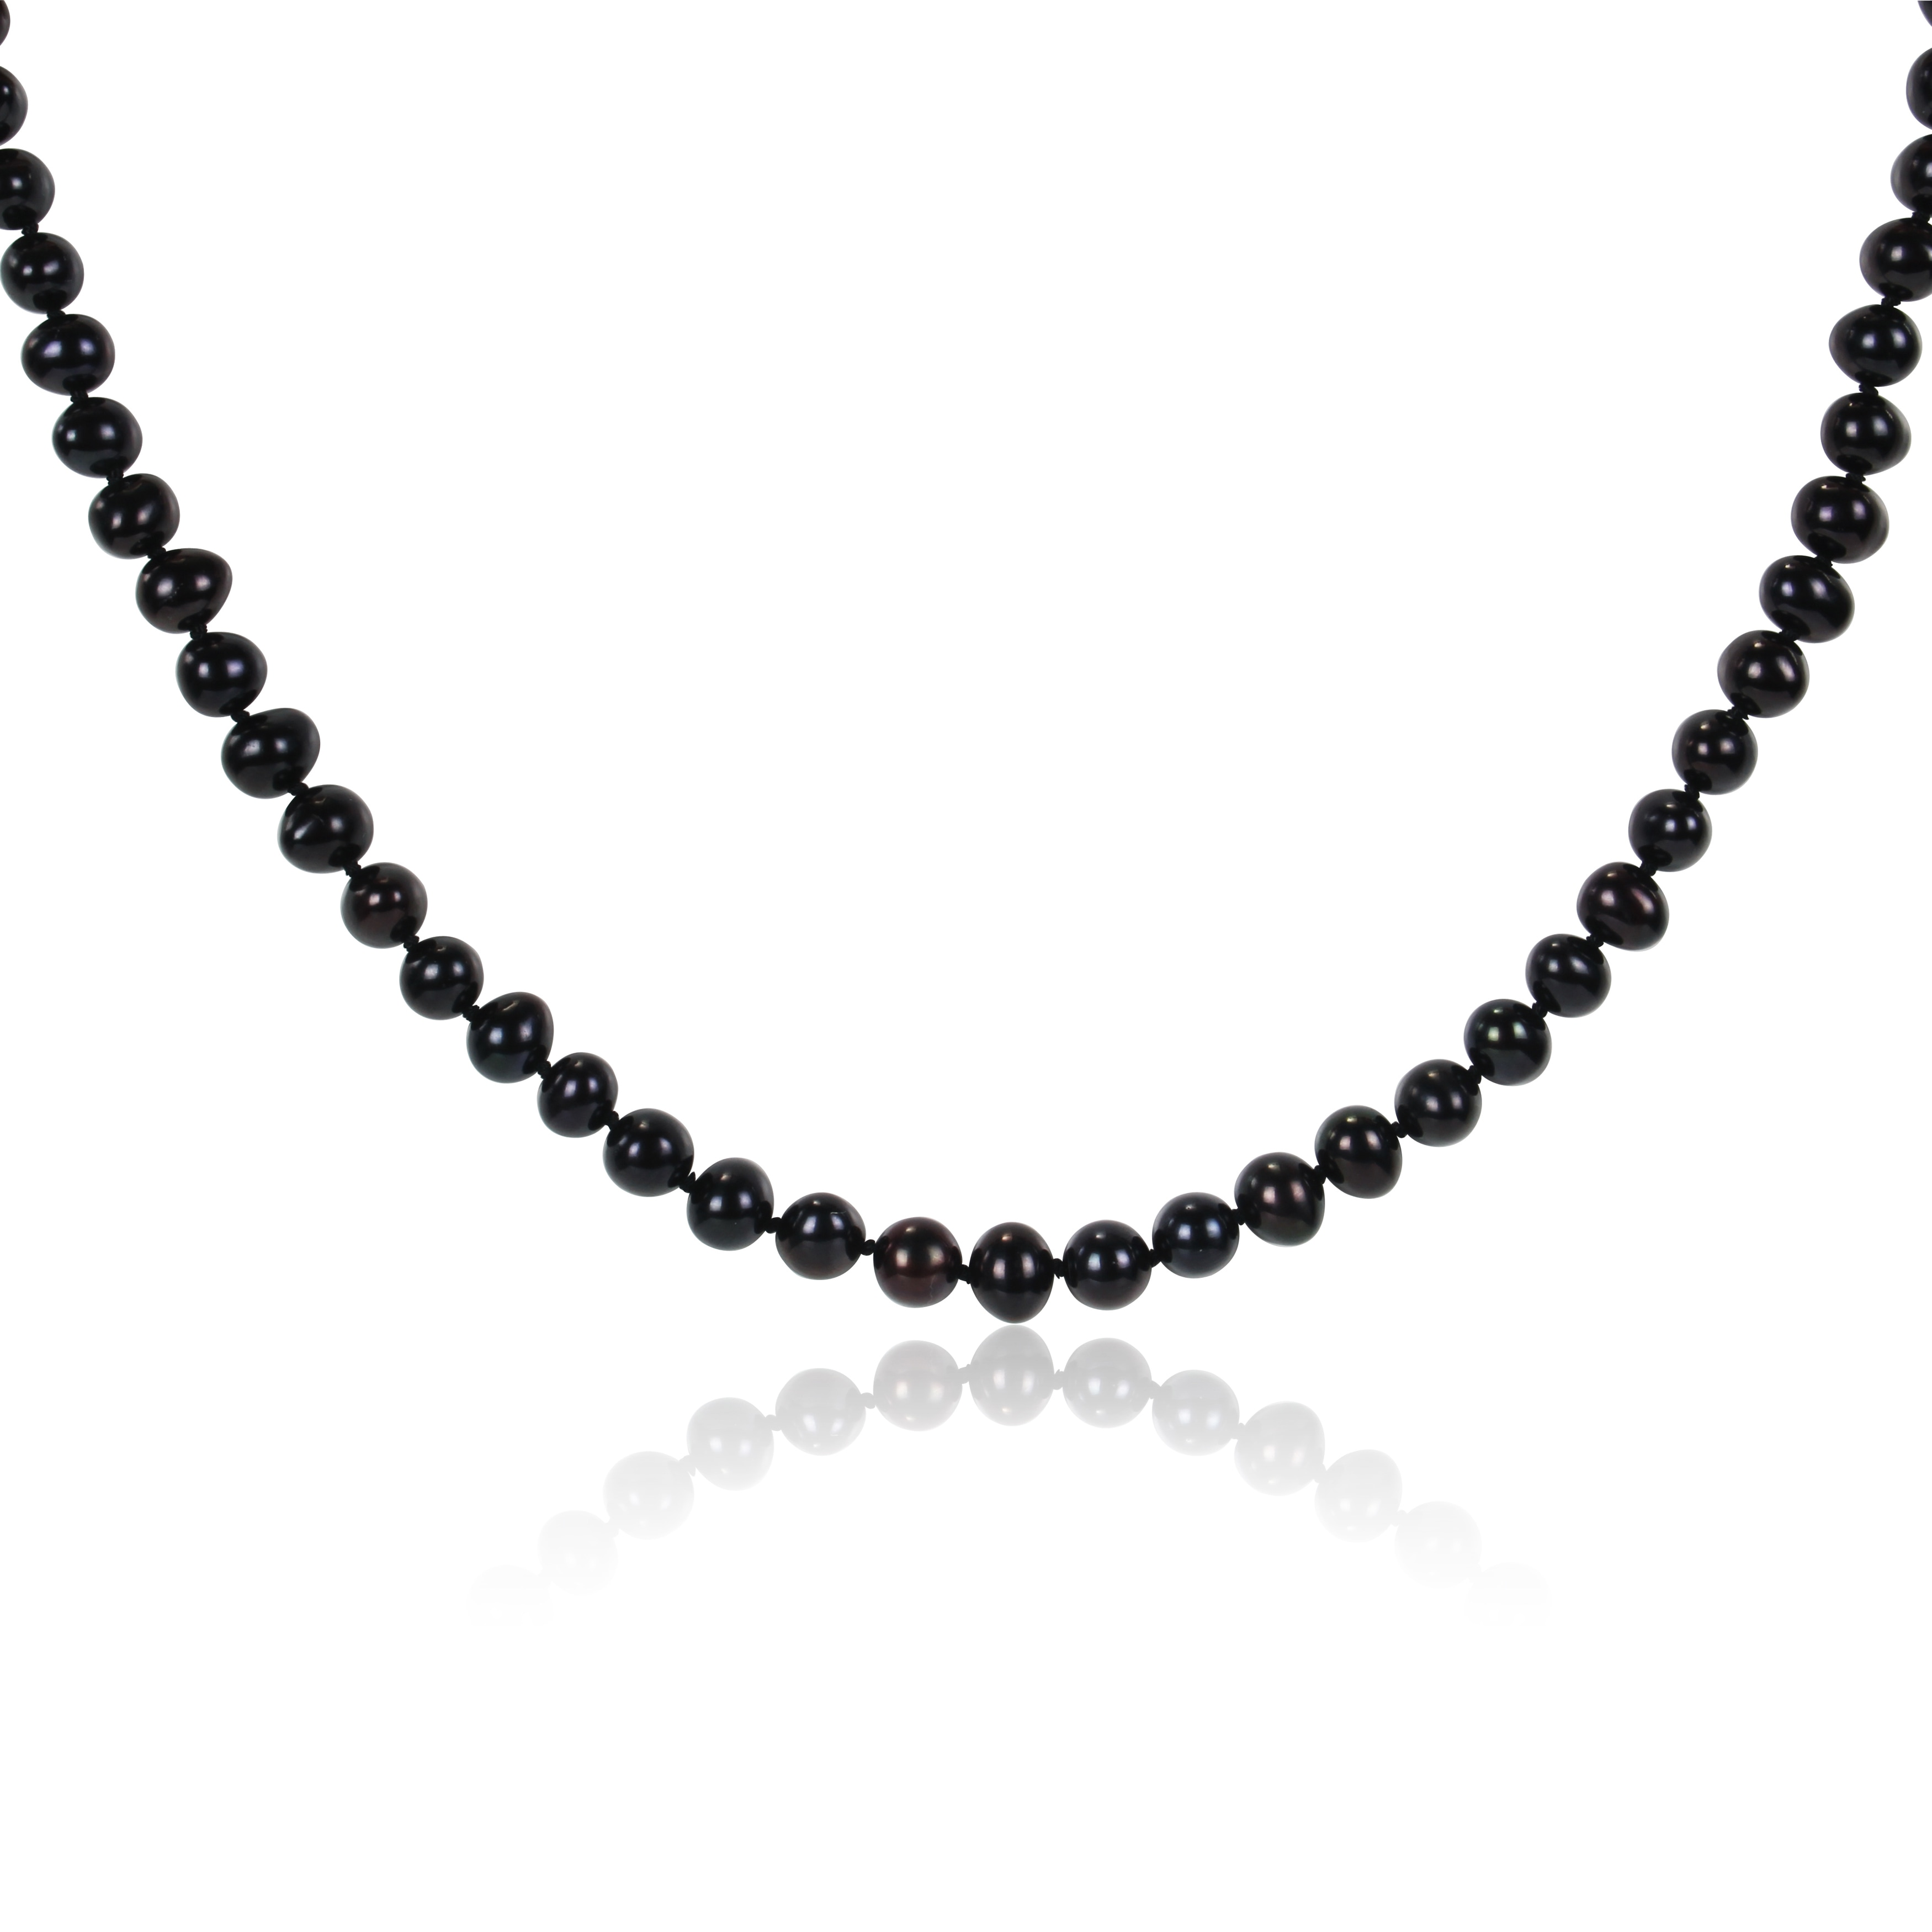 M by Miadora Black Cultured Freshwater Pearl Necklace with Silver Clasp (6.5 - 7 mm)